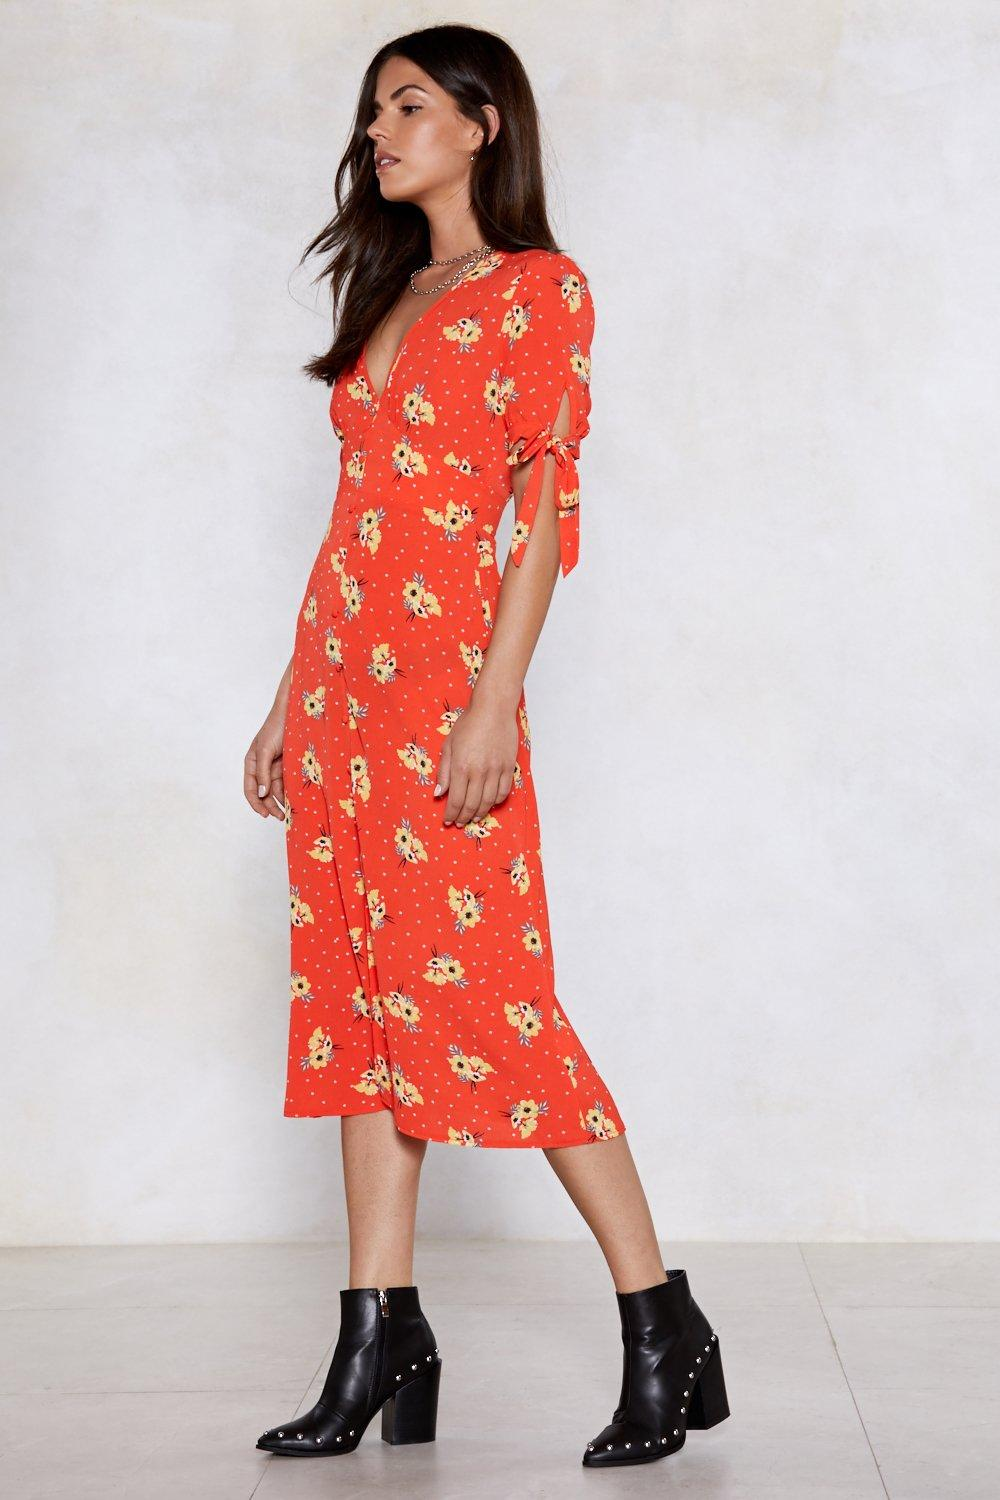 91c0383790a9 Floral Wrap Midi Dress. Hover to zoom